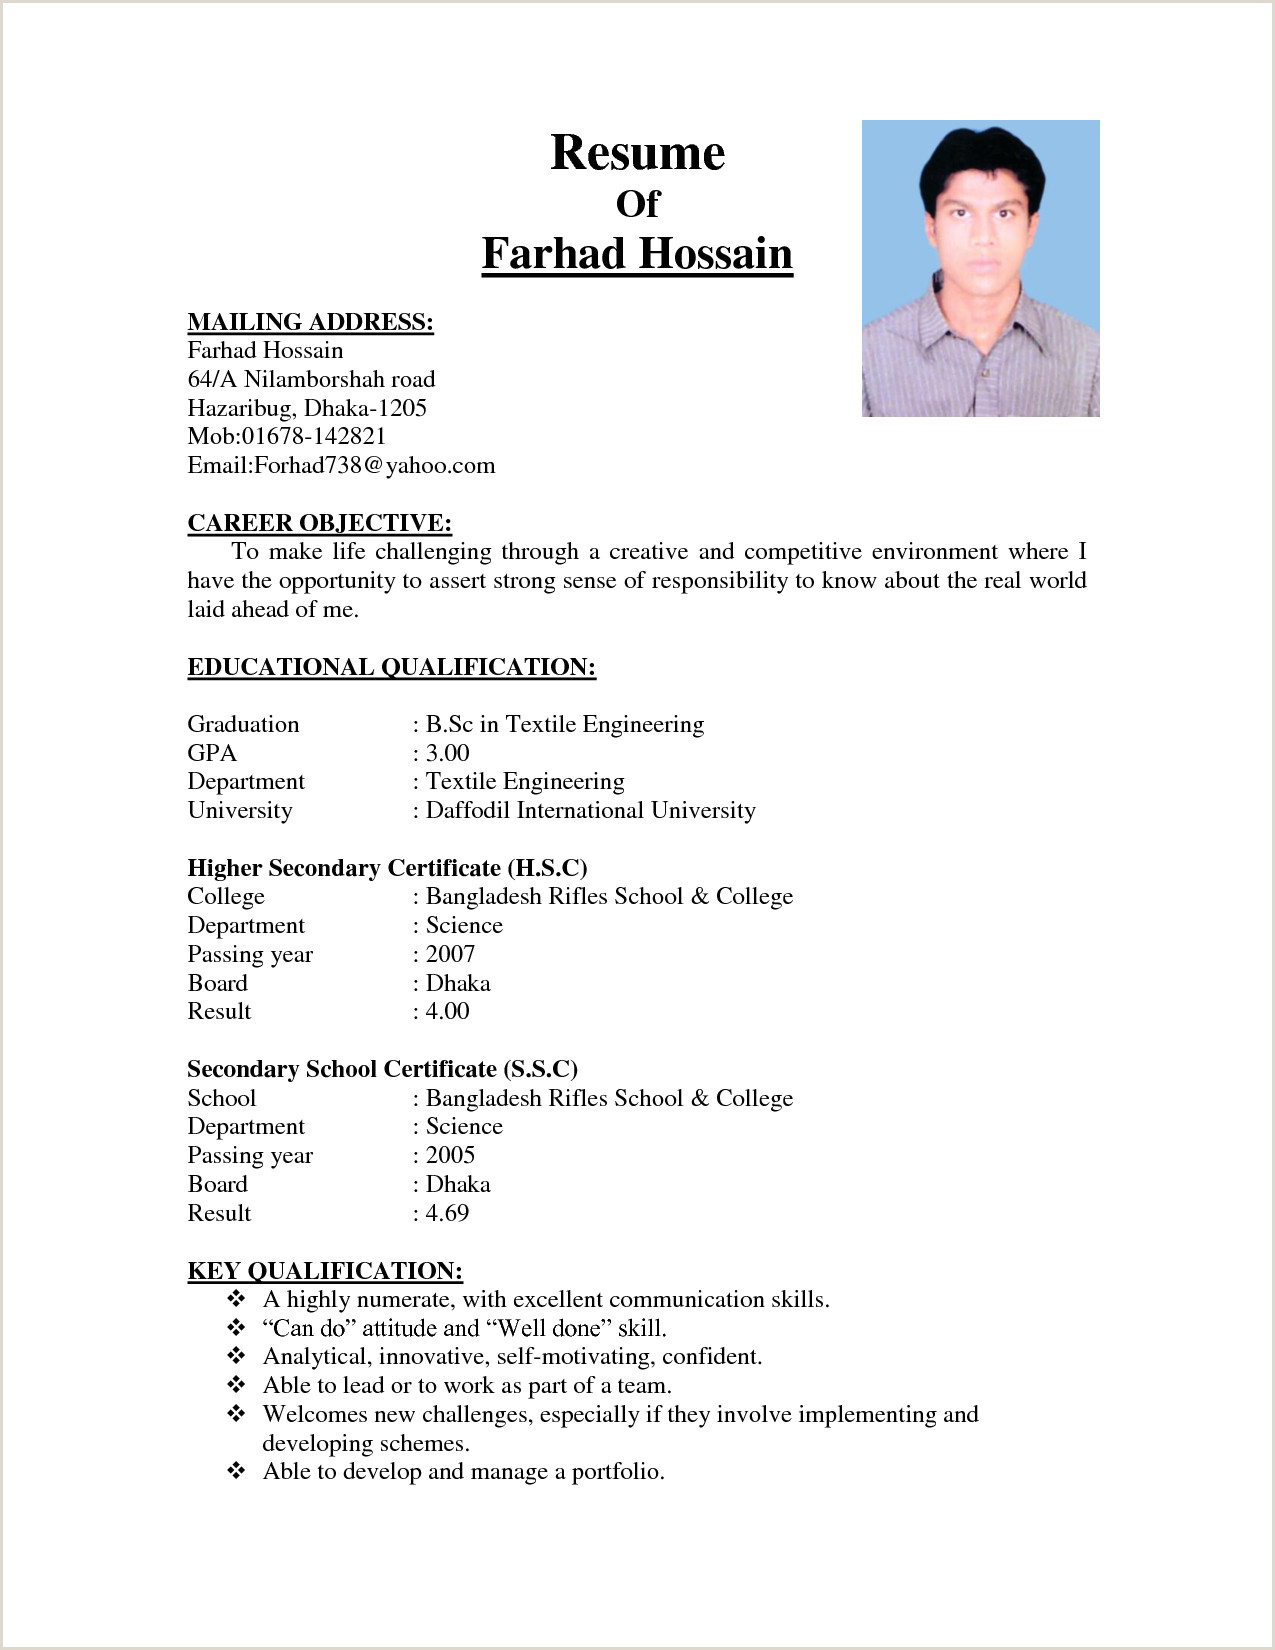 Cv format for School Job Walton Pany Cv format Bangladesh Yahoo Image Search